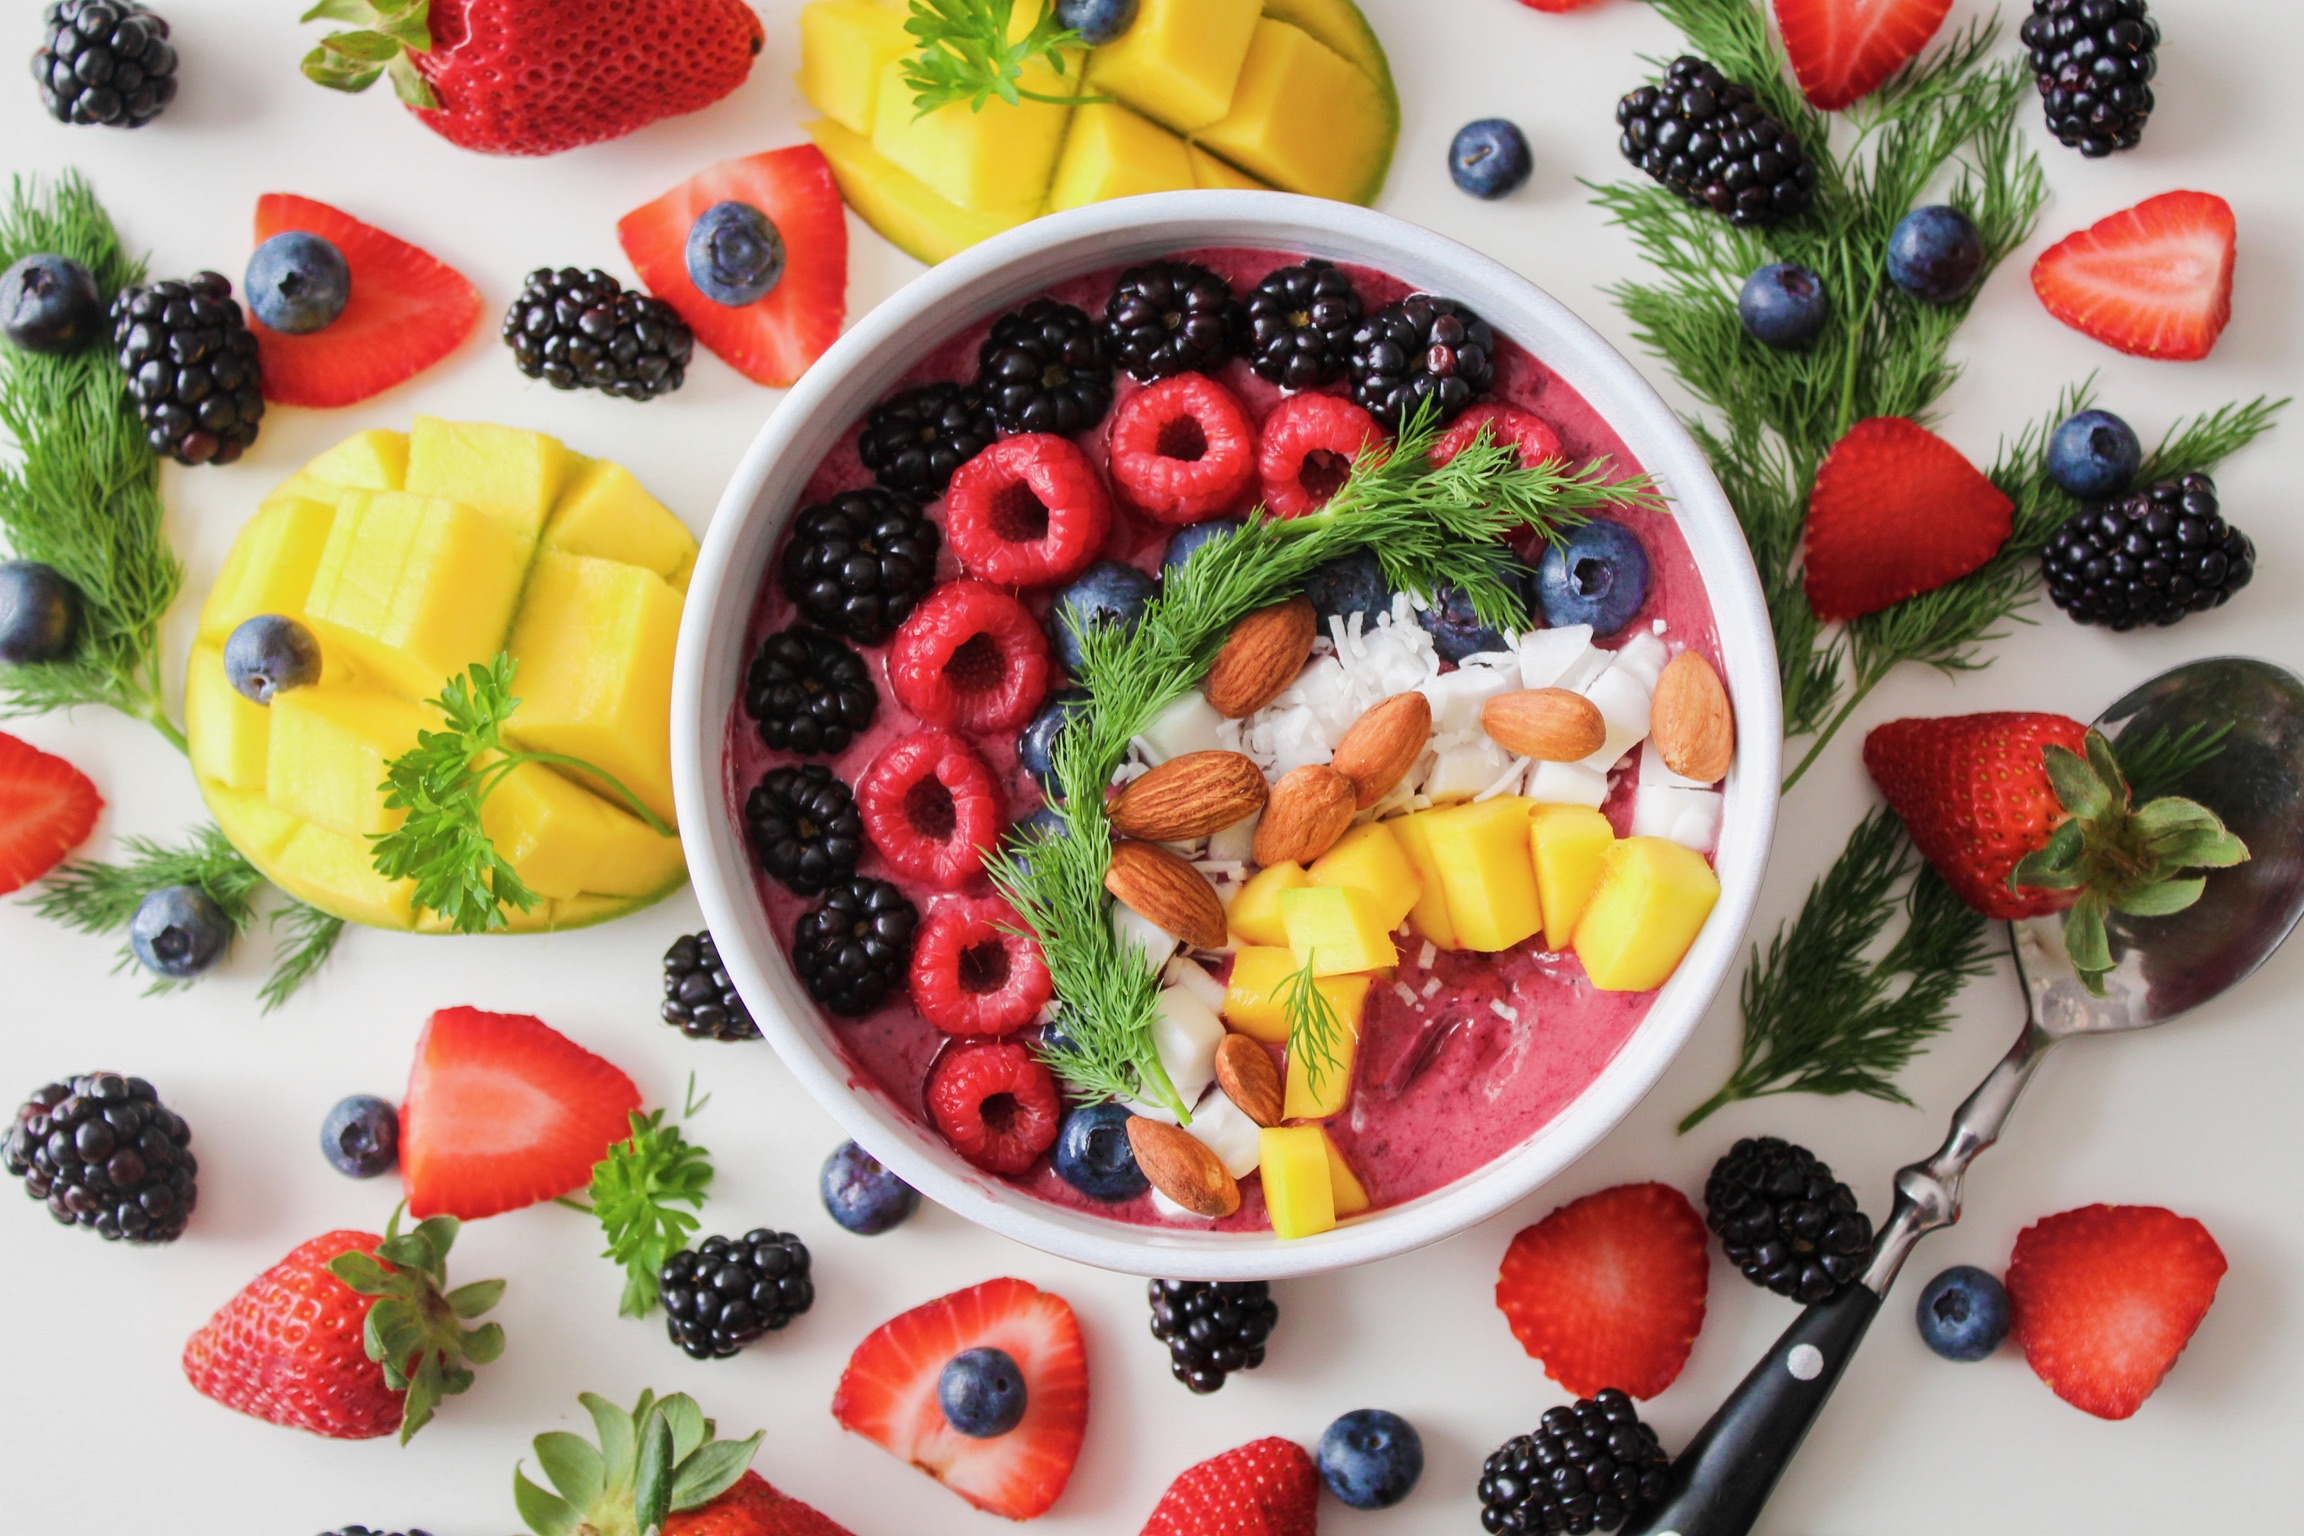 How To Plan Healthy Breakfast Ideas to Lose Weight